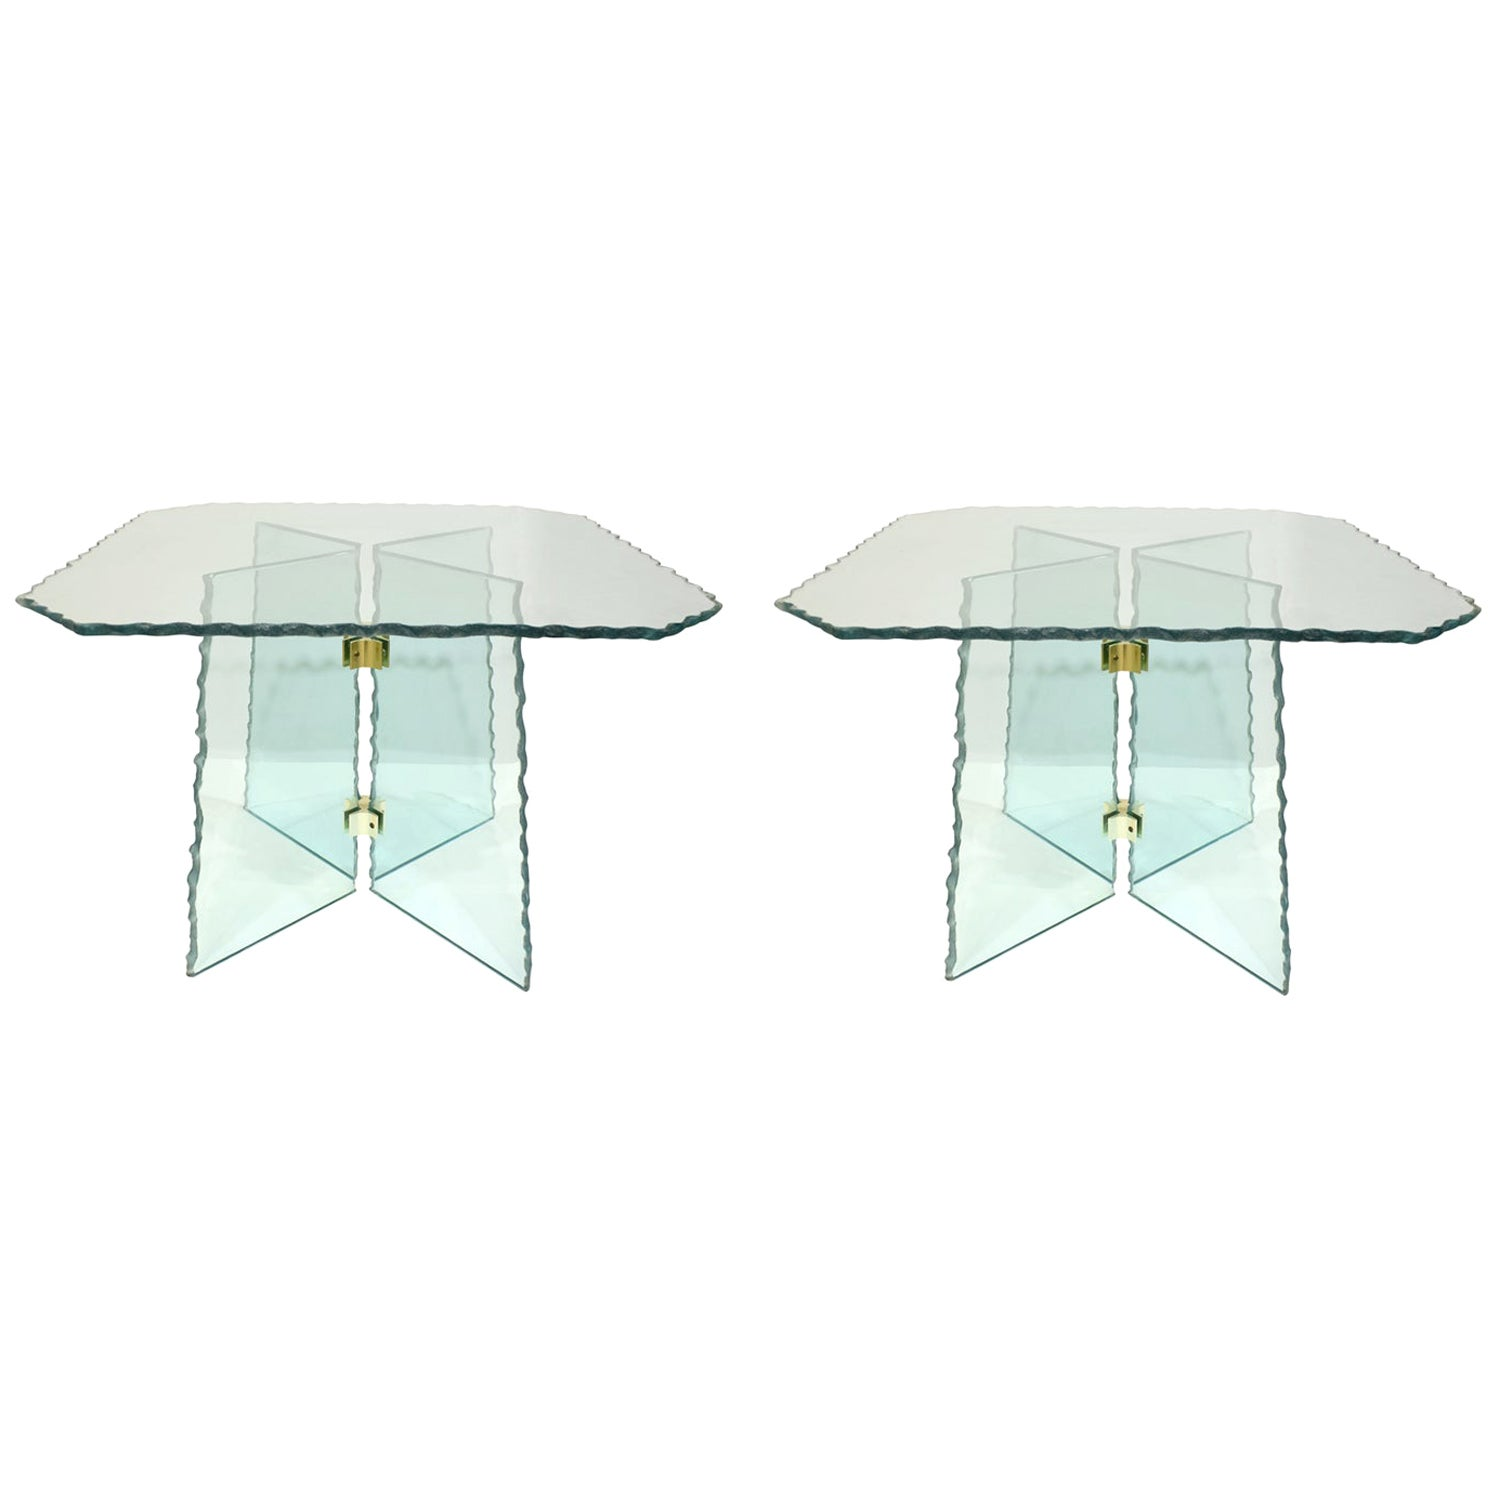 Pair of Large Artisan Italian Glass End Tables, 1970s